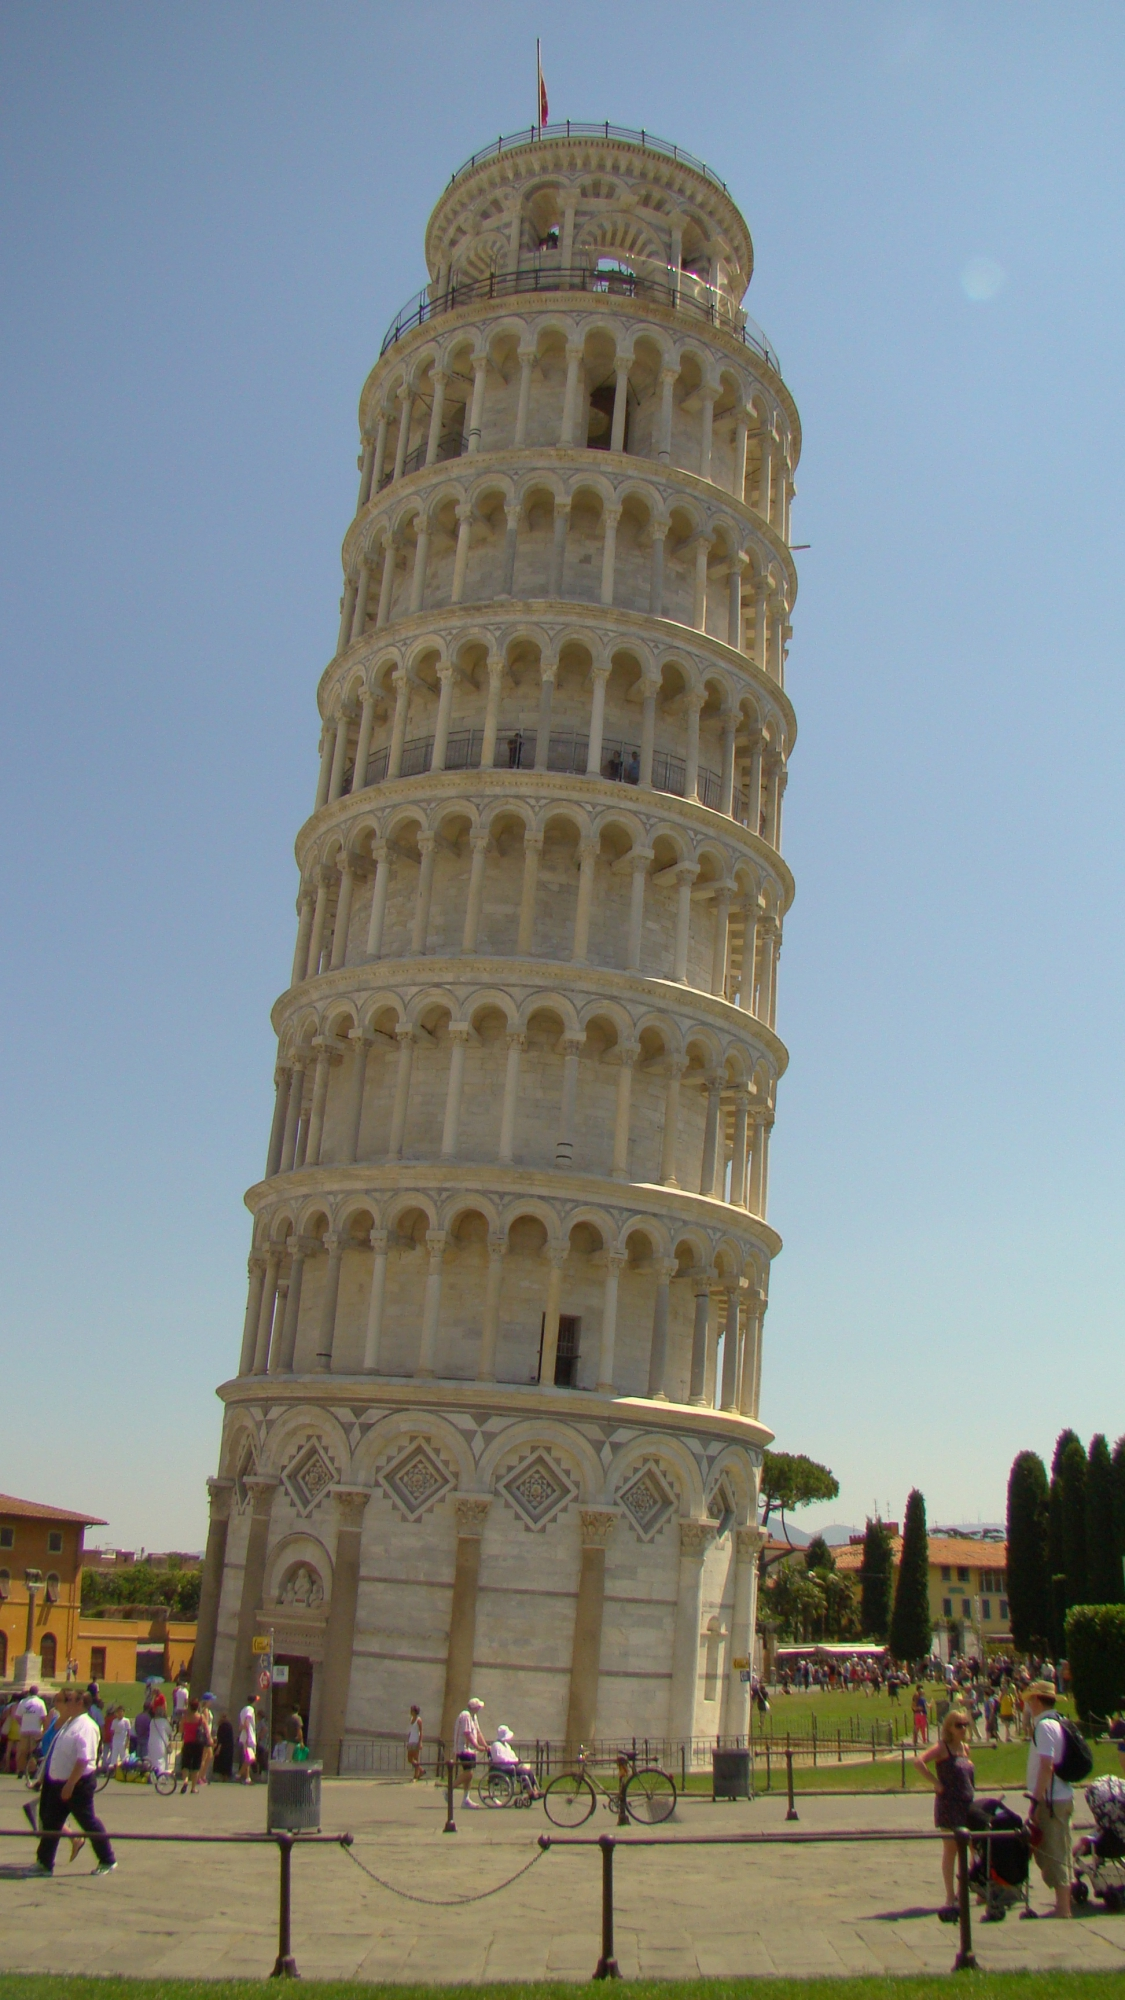 The leaning tower of pisa and the square of miracles learn about italy - Leaning tower of pisa ...